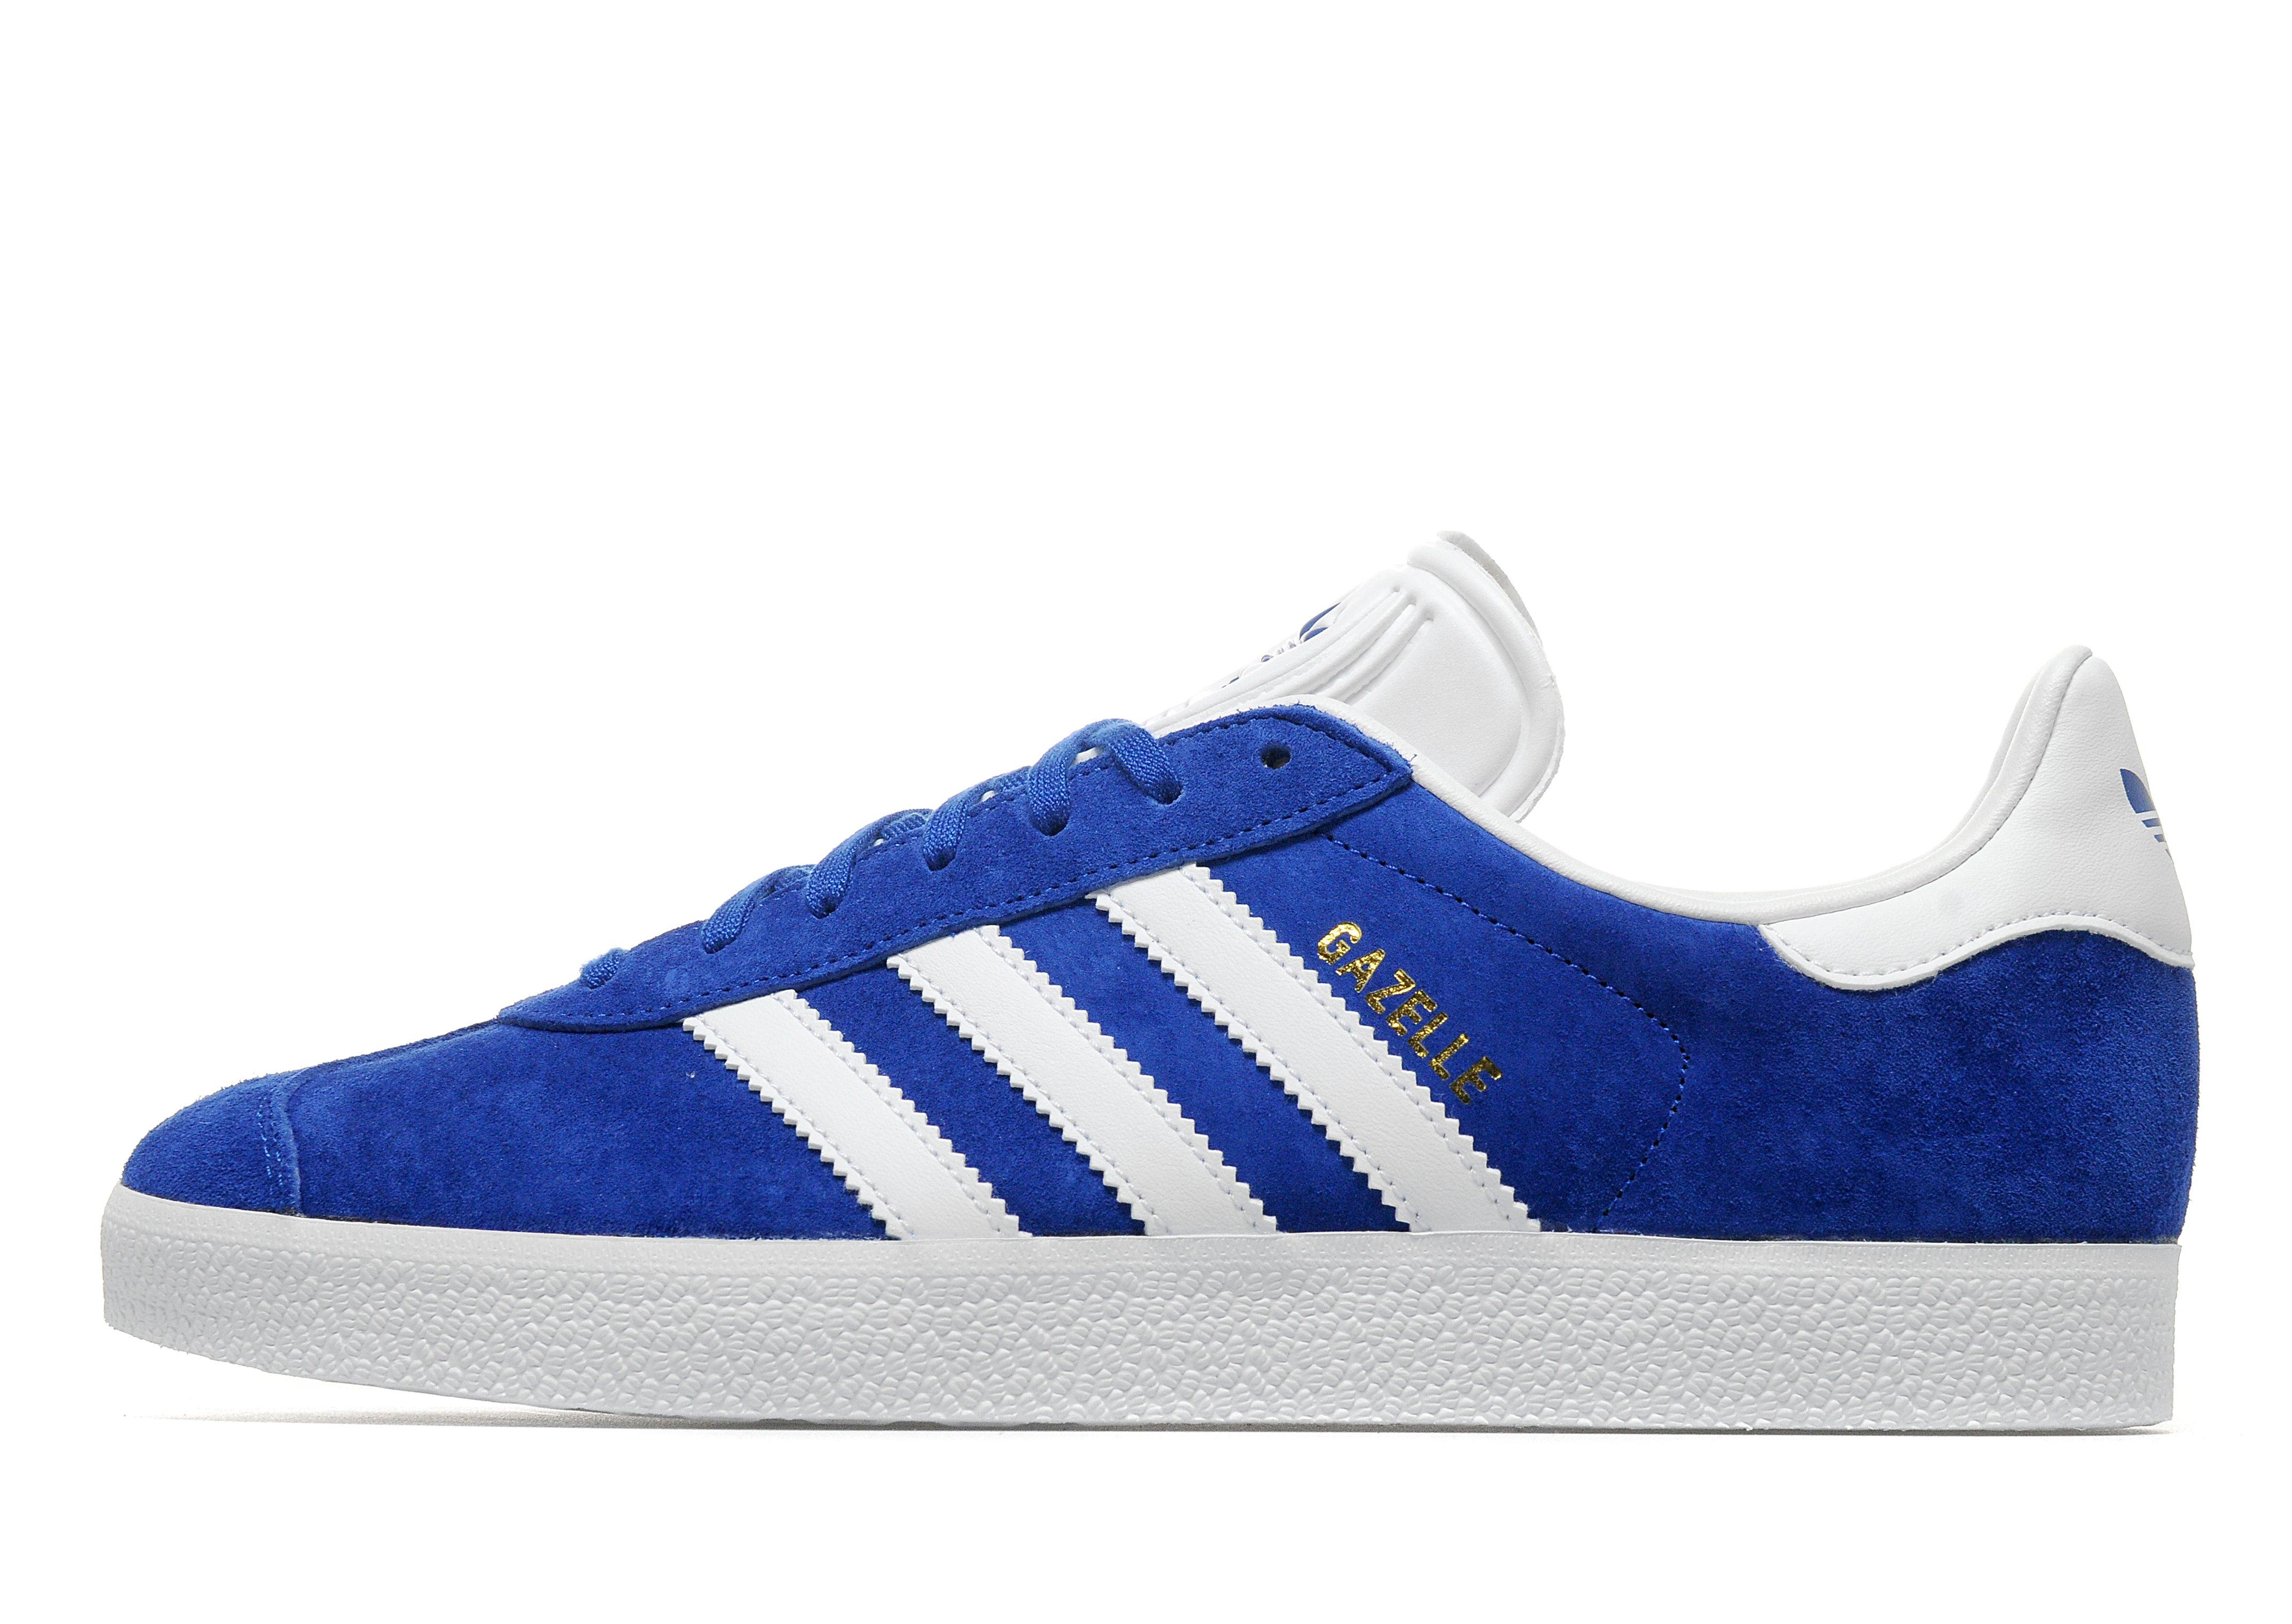 9ce953606e62 adidas munchen grey jd sports